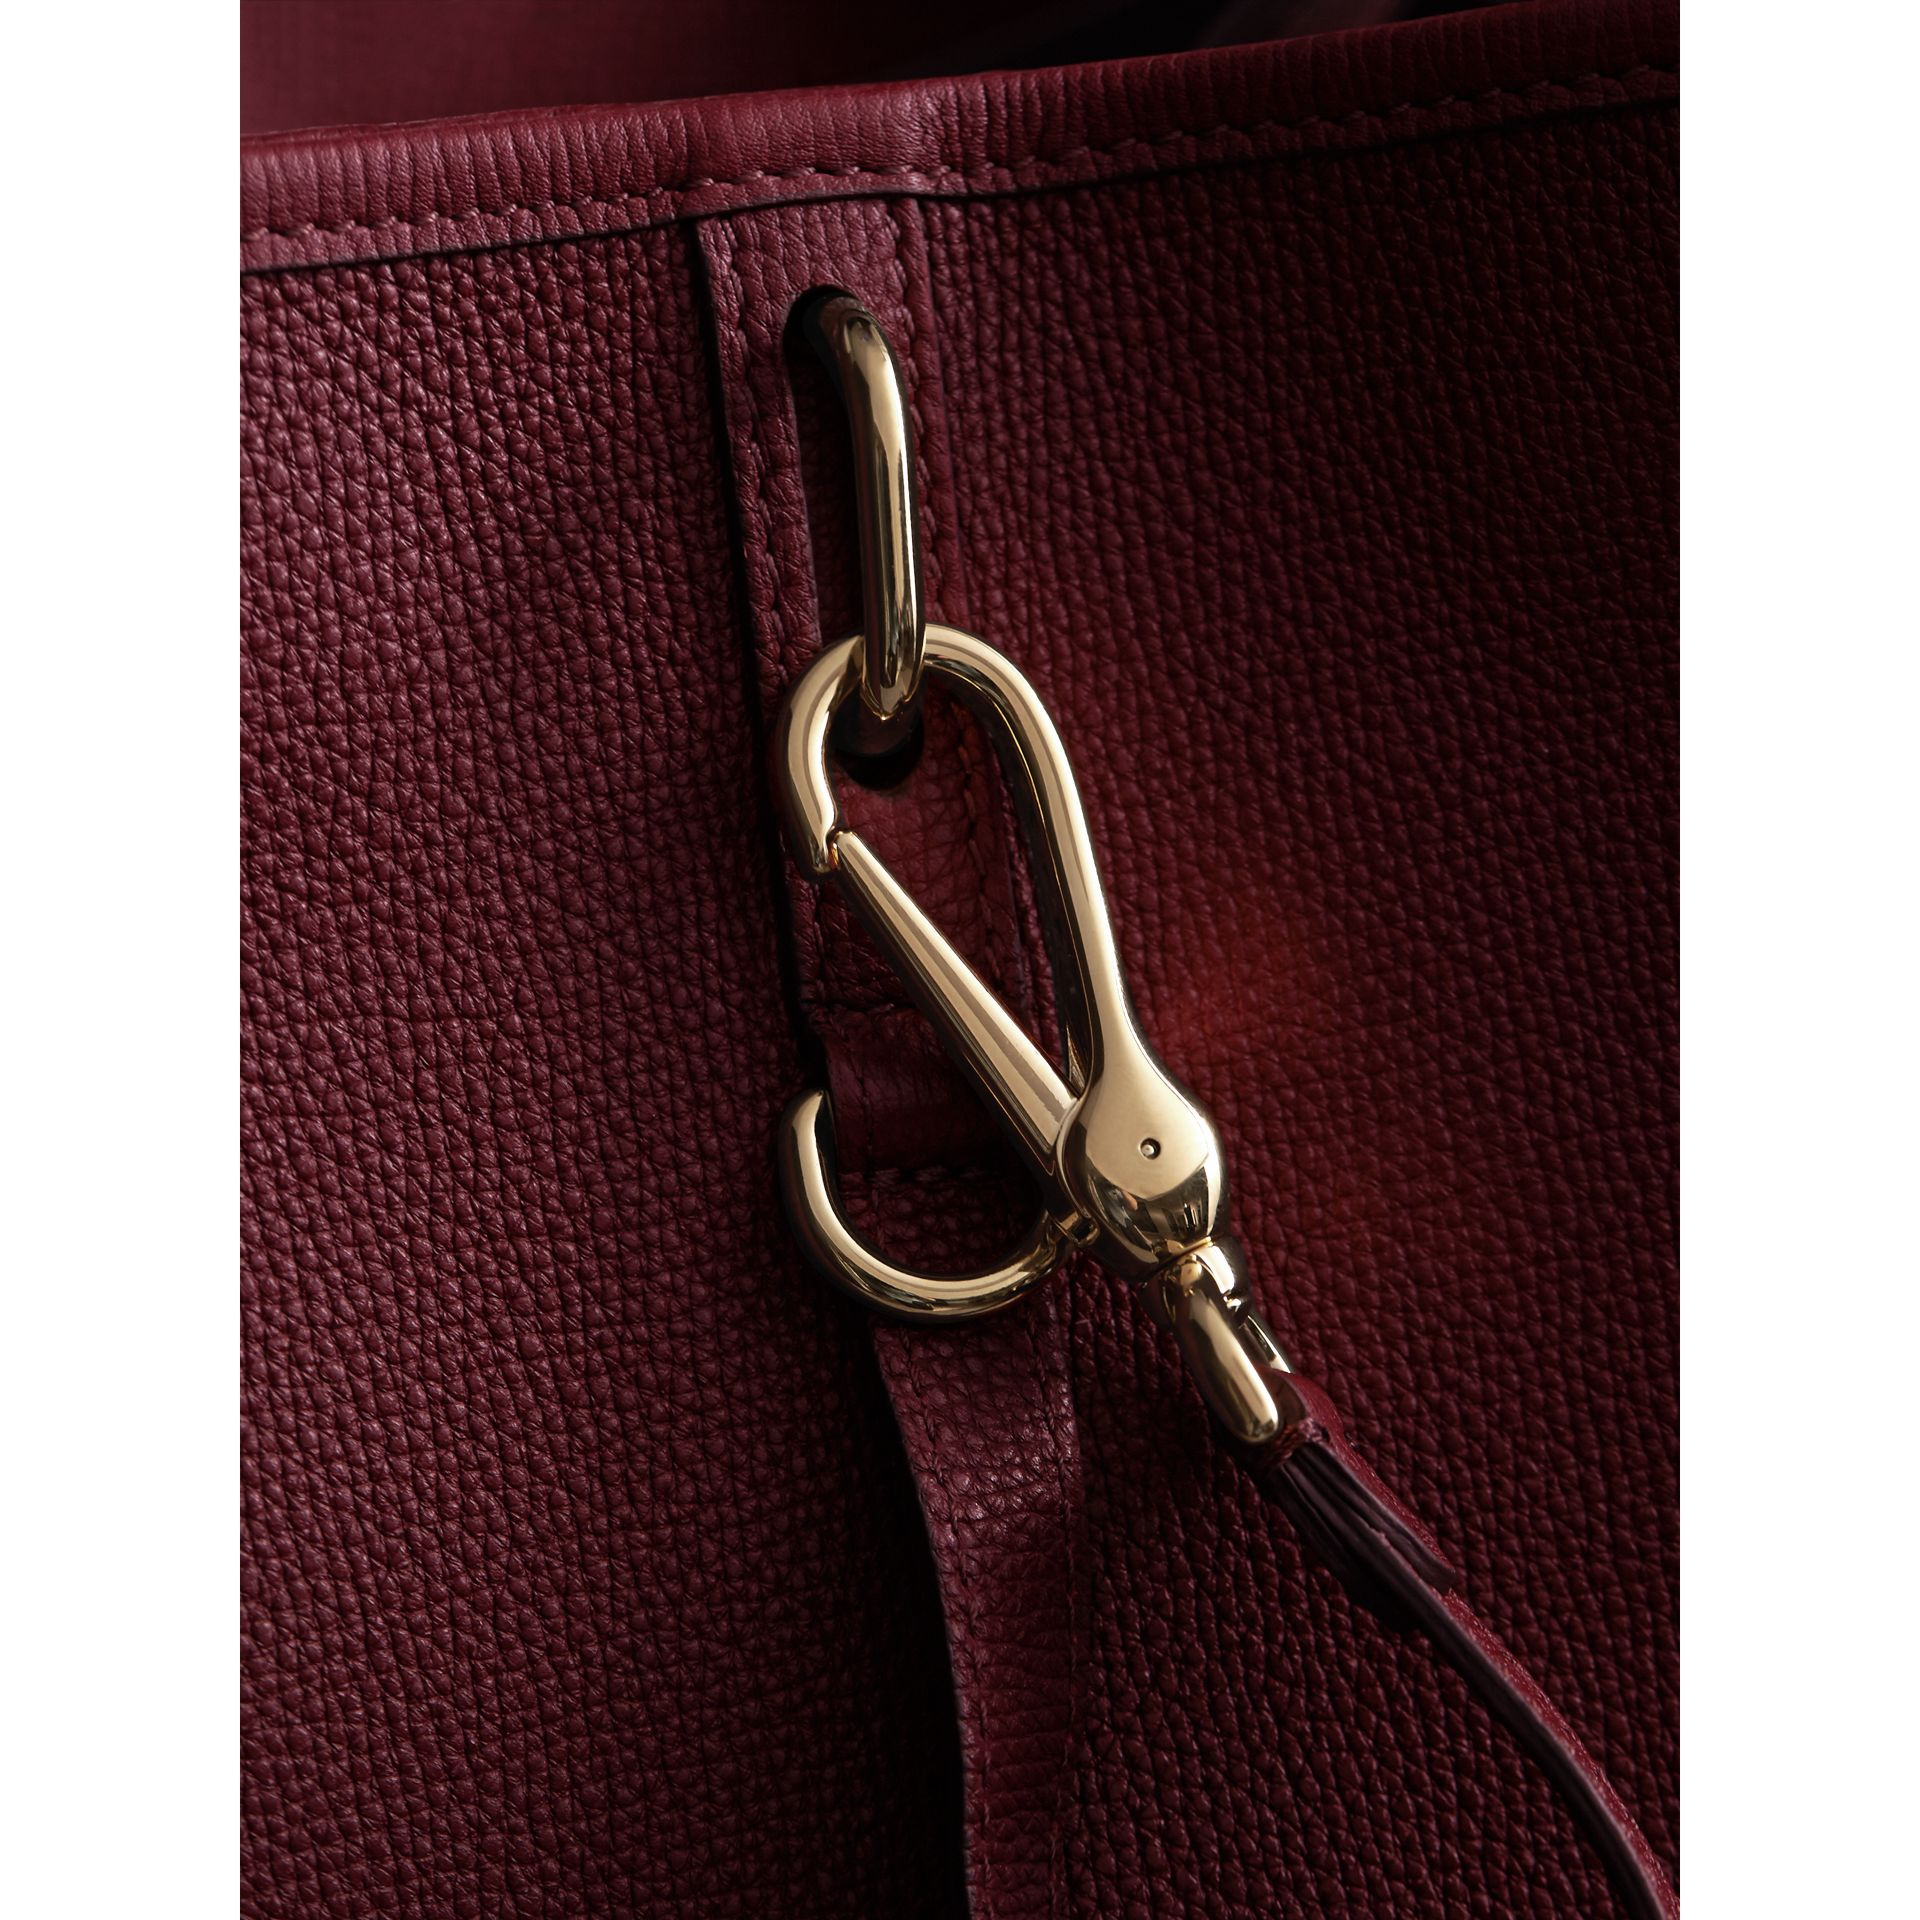 Medium Grainy Leather Tote Bag in Mahogany Red - Women | Burberry Canada - gallery image 2